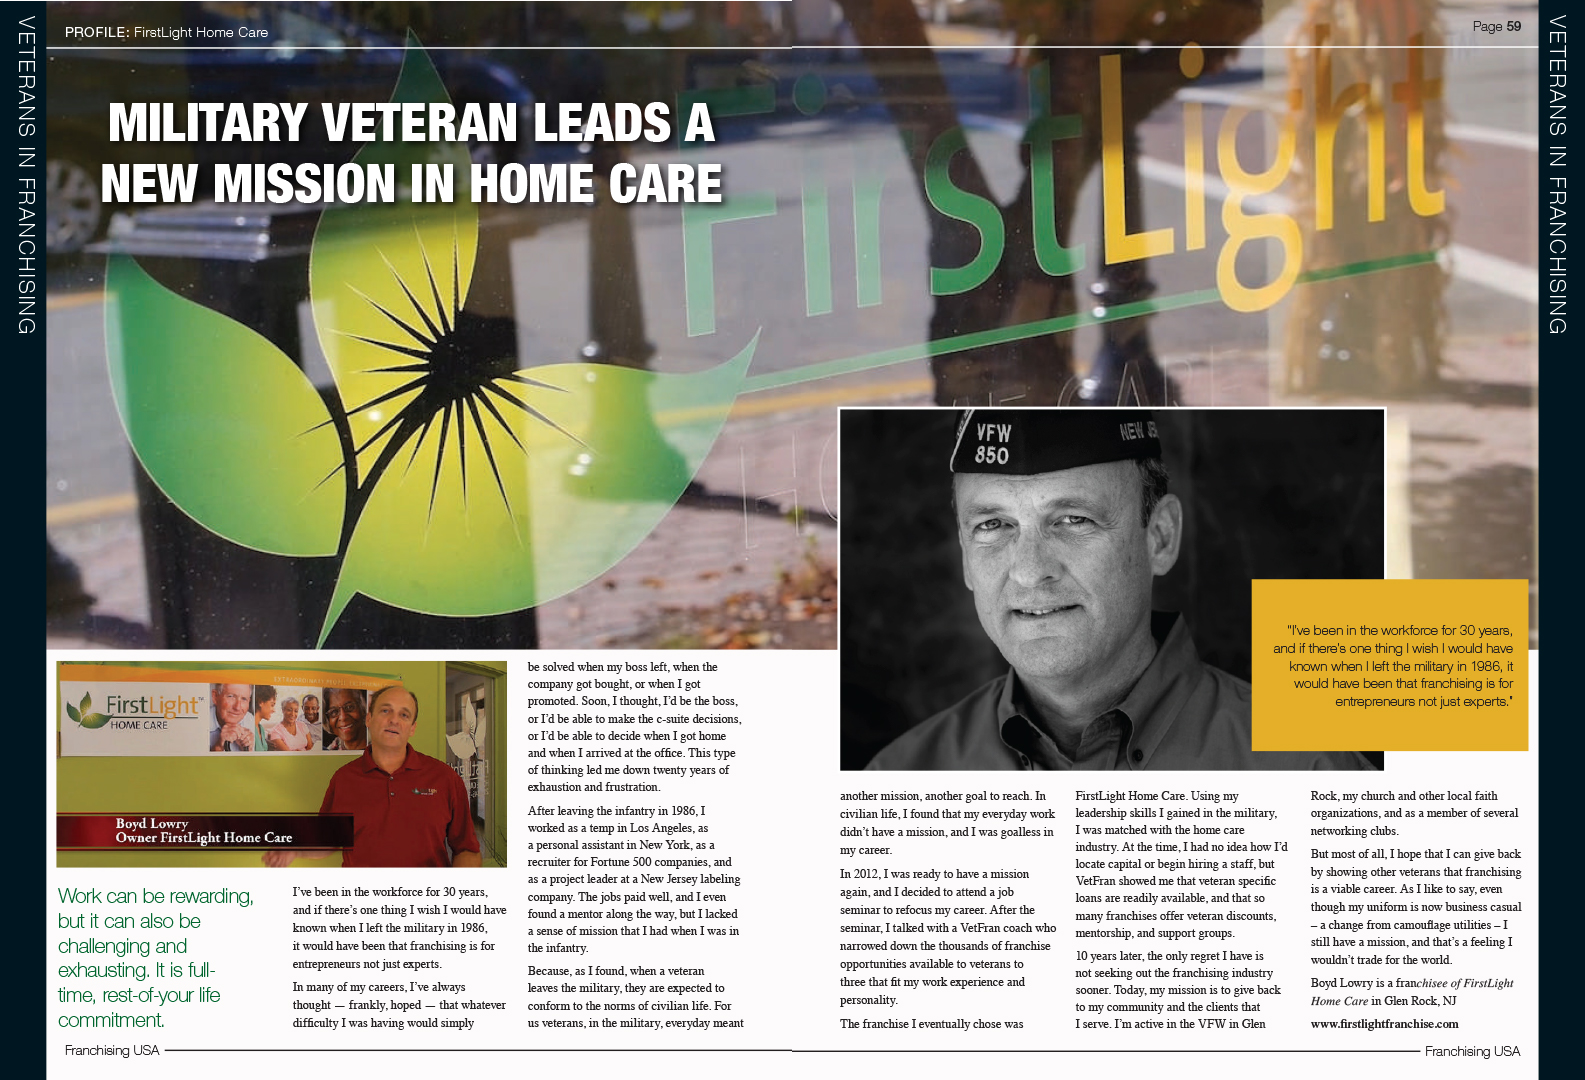 FirstLight Home Care - Military Veteran Leads A New Mission in Home Care